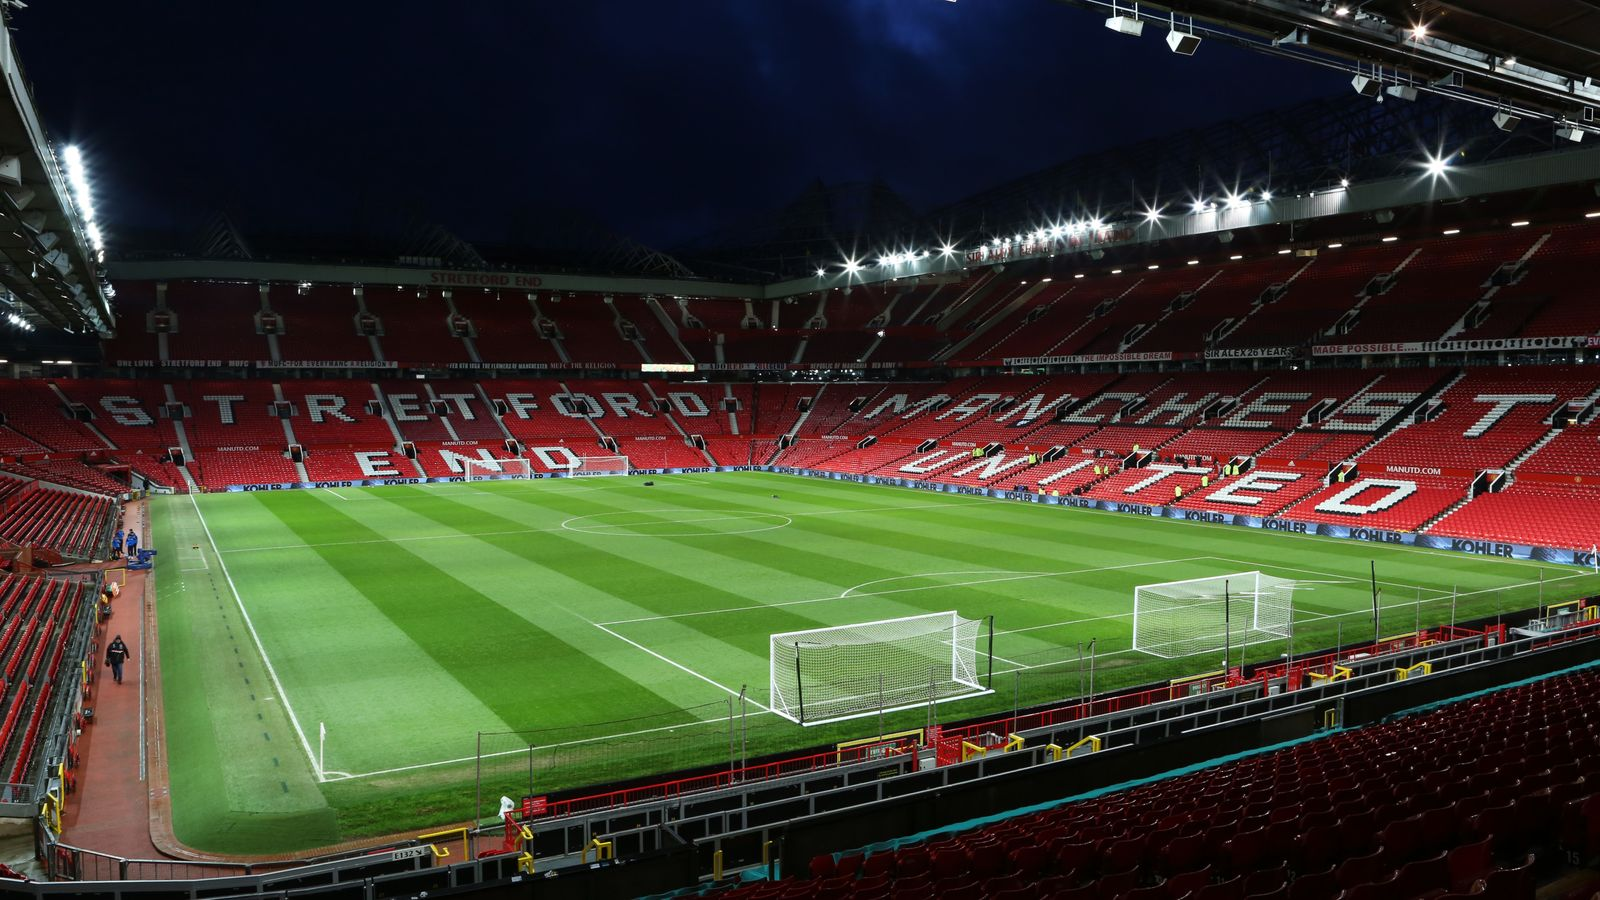 manchester united victims of cyber attack but confident west brom game can go ahead football news sky sports sky sports